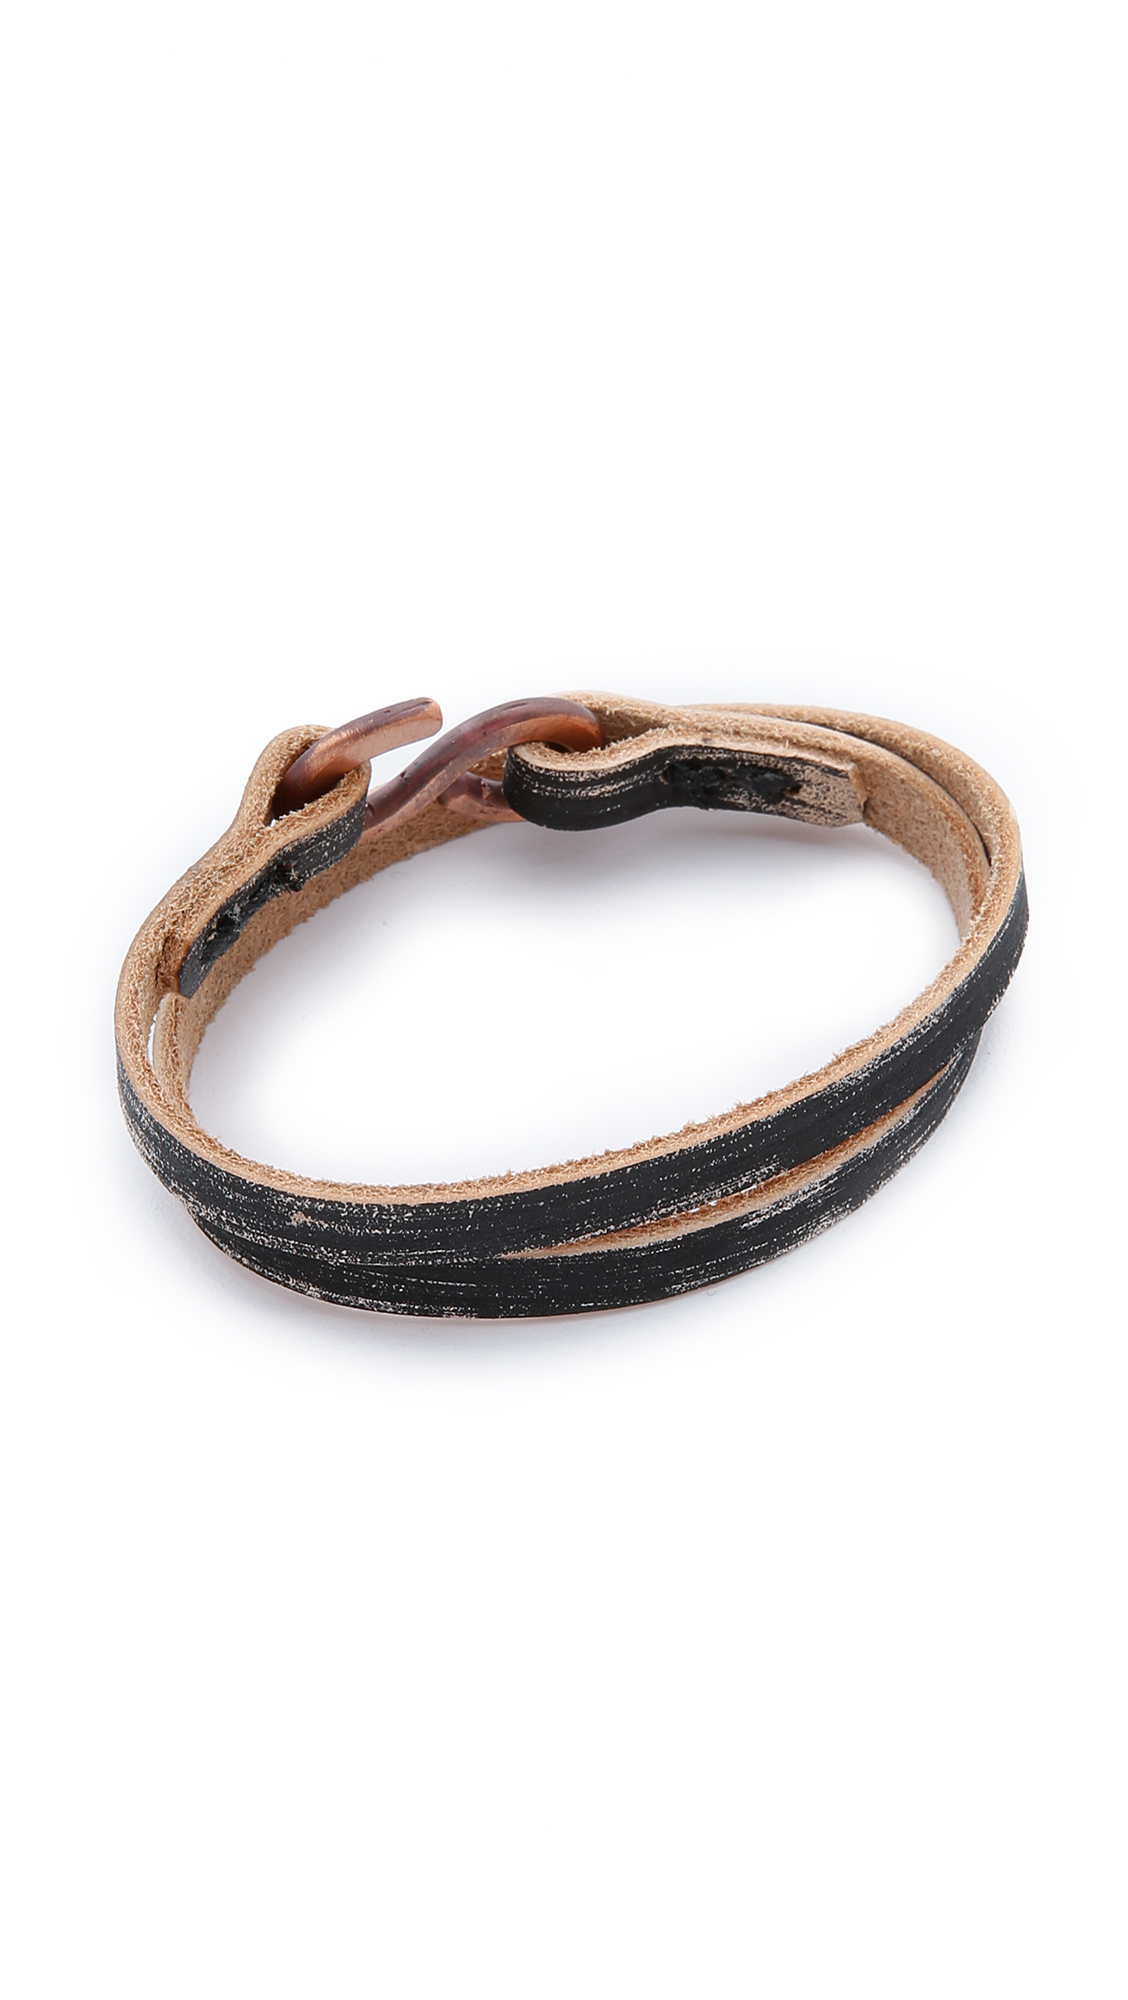 Cause And Effect Brushed Leather Wrap Bracelet In Black. Wide Wedding Rings. Black Tourmaline Rings. Composite Bands. Gorgeous Watches. Artsy Rings. Anklet Shopping. Diamond Simulant Engagement Rings. Twisted Bangle